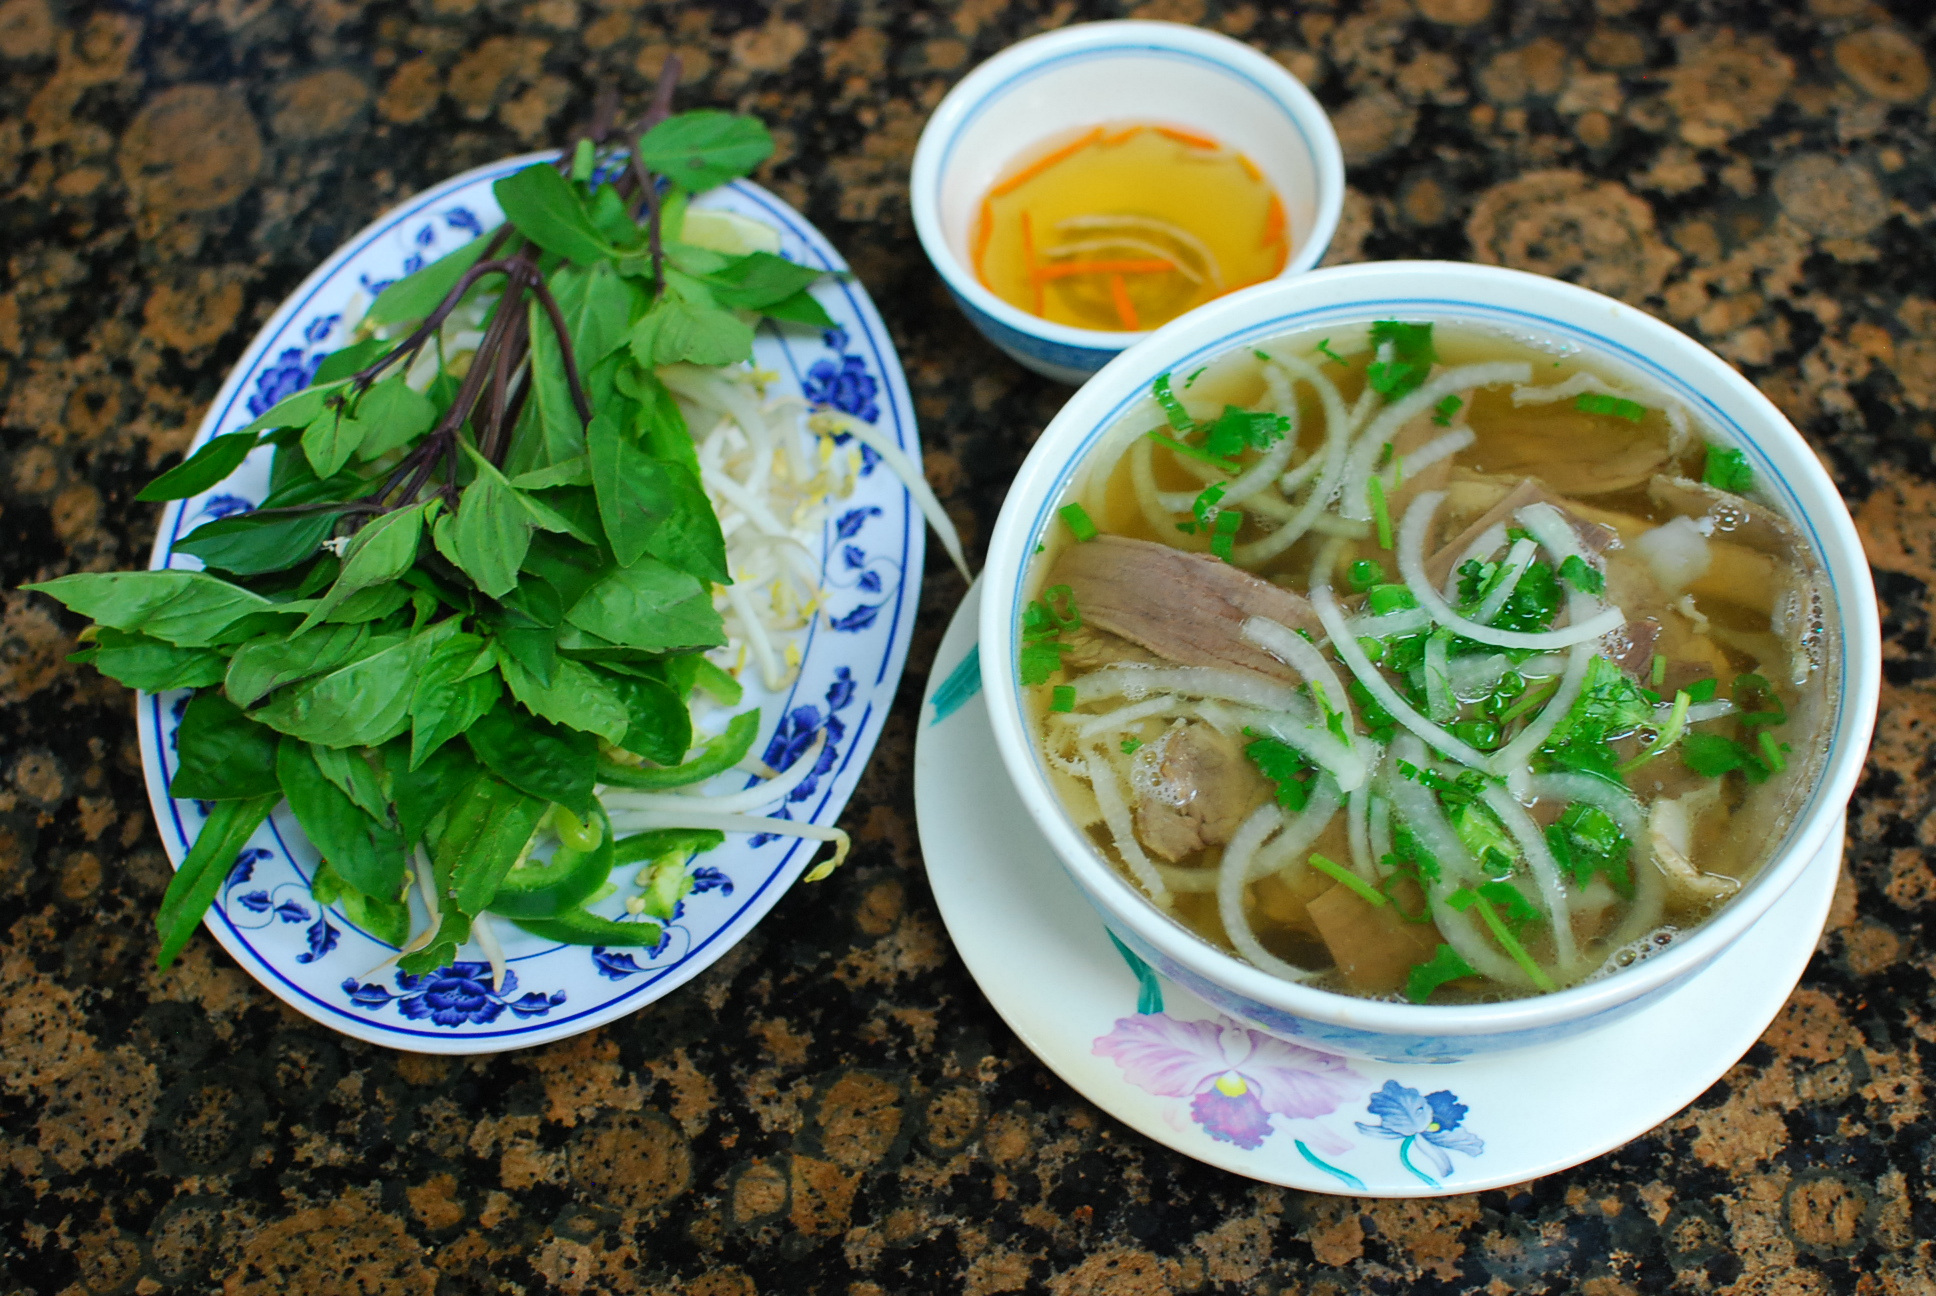 15 Best Dishes In The West San Gabriel Valley - Food Republic